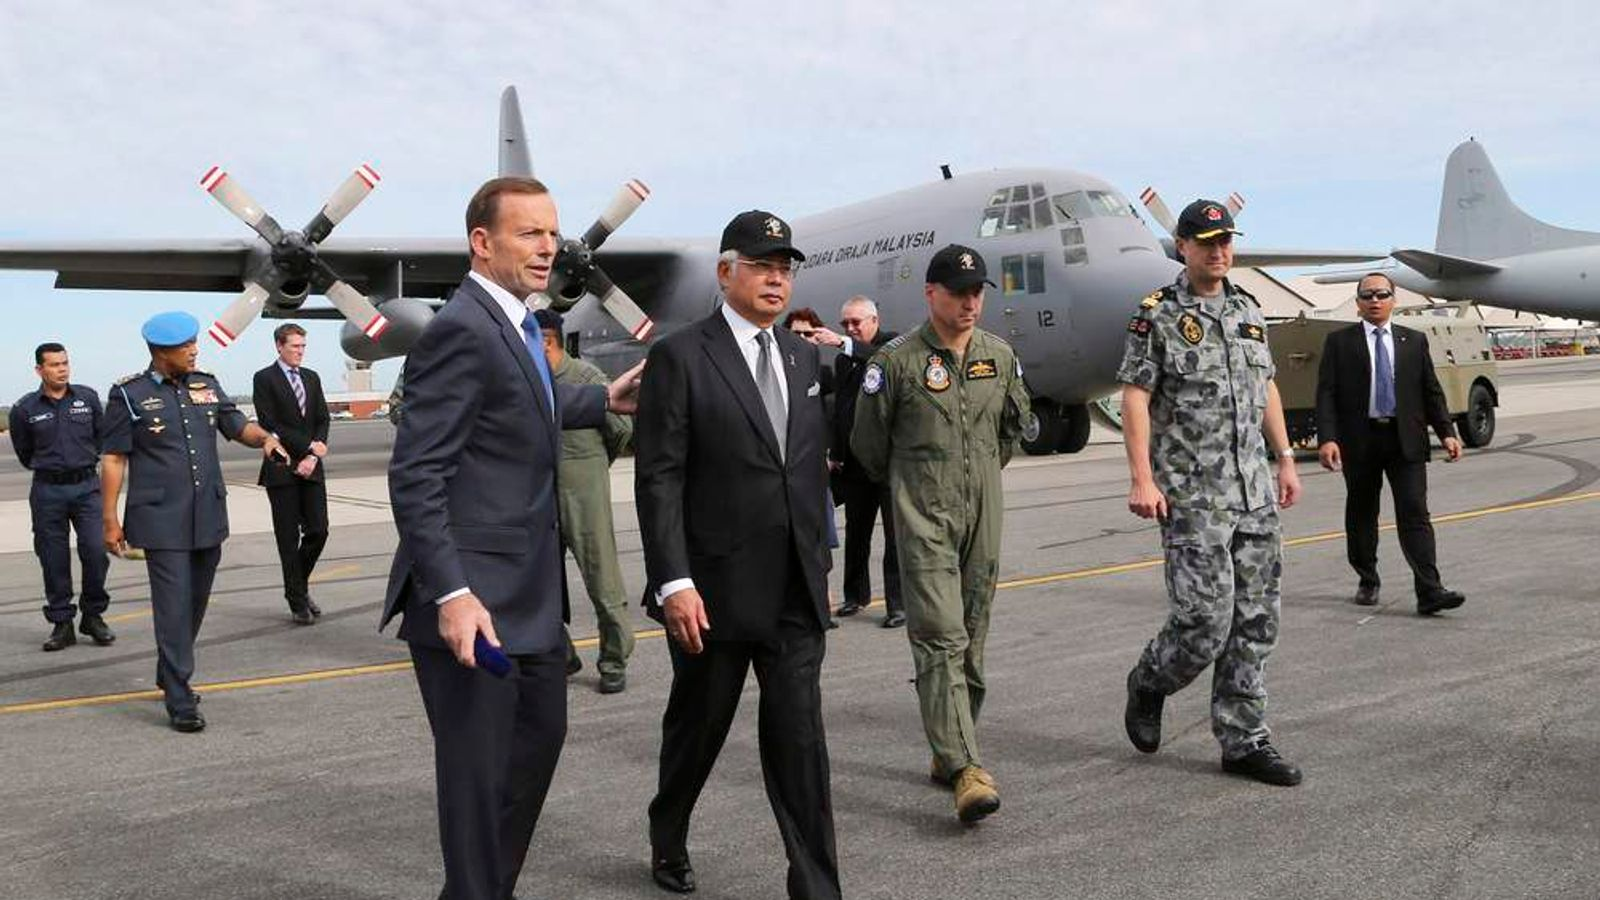 Australia's Prime Minister Tony Abbott and Malaysia's Prime Minister Najib Razak tour the tarmac of RAAF Base Pearce near Perth